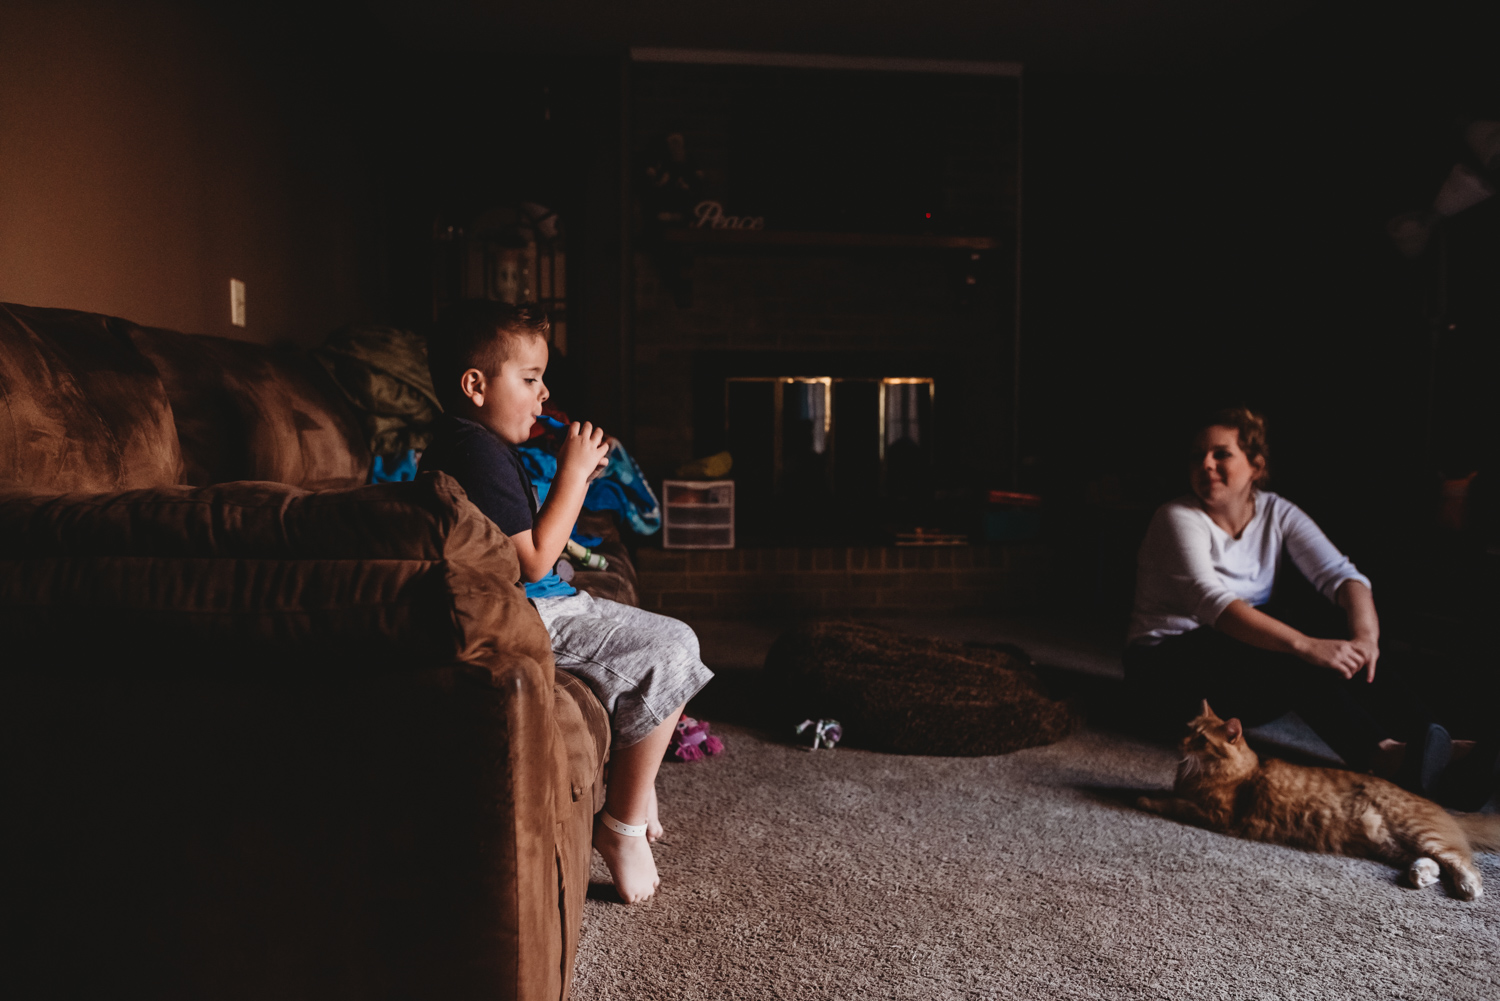 Angie_Klaus_photography_family-15.jpg